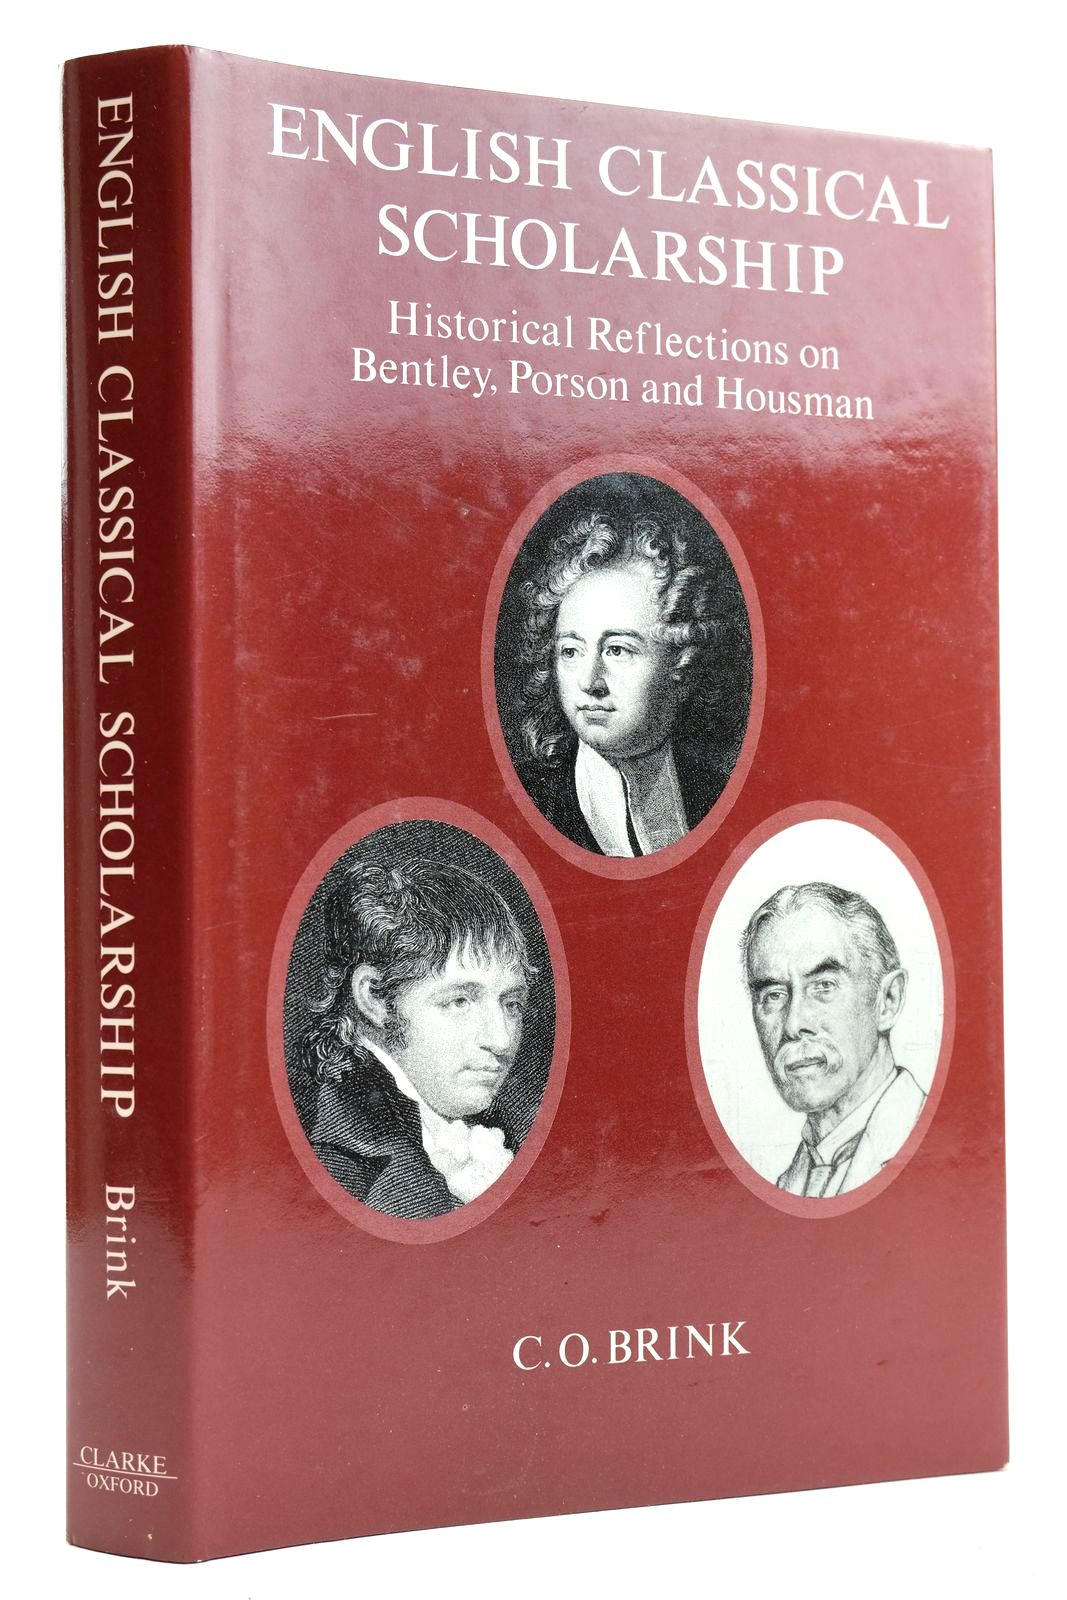 Photo of ENGLISH CLASSICAL SCHOLARSHIP HISTORICAL REFLECTIONS ON BENTLEY, PORSON, AND HOUSMAN